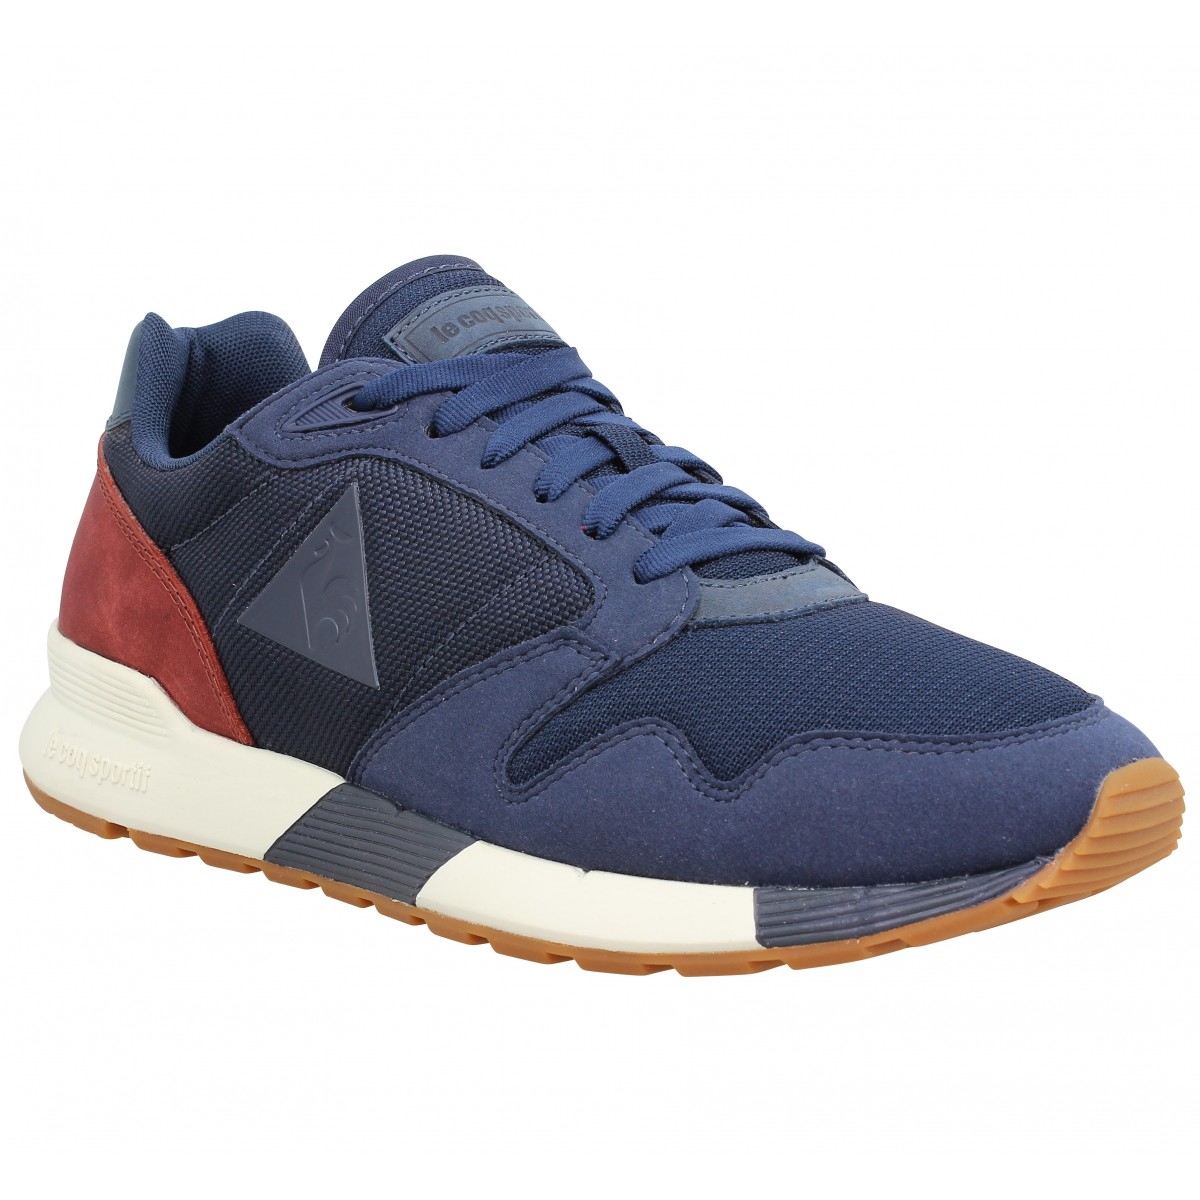 Le Coq Sportif Homme Omega X Craft Toile...